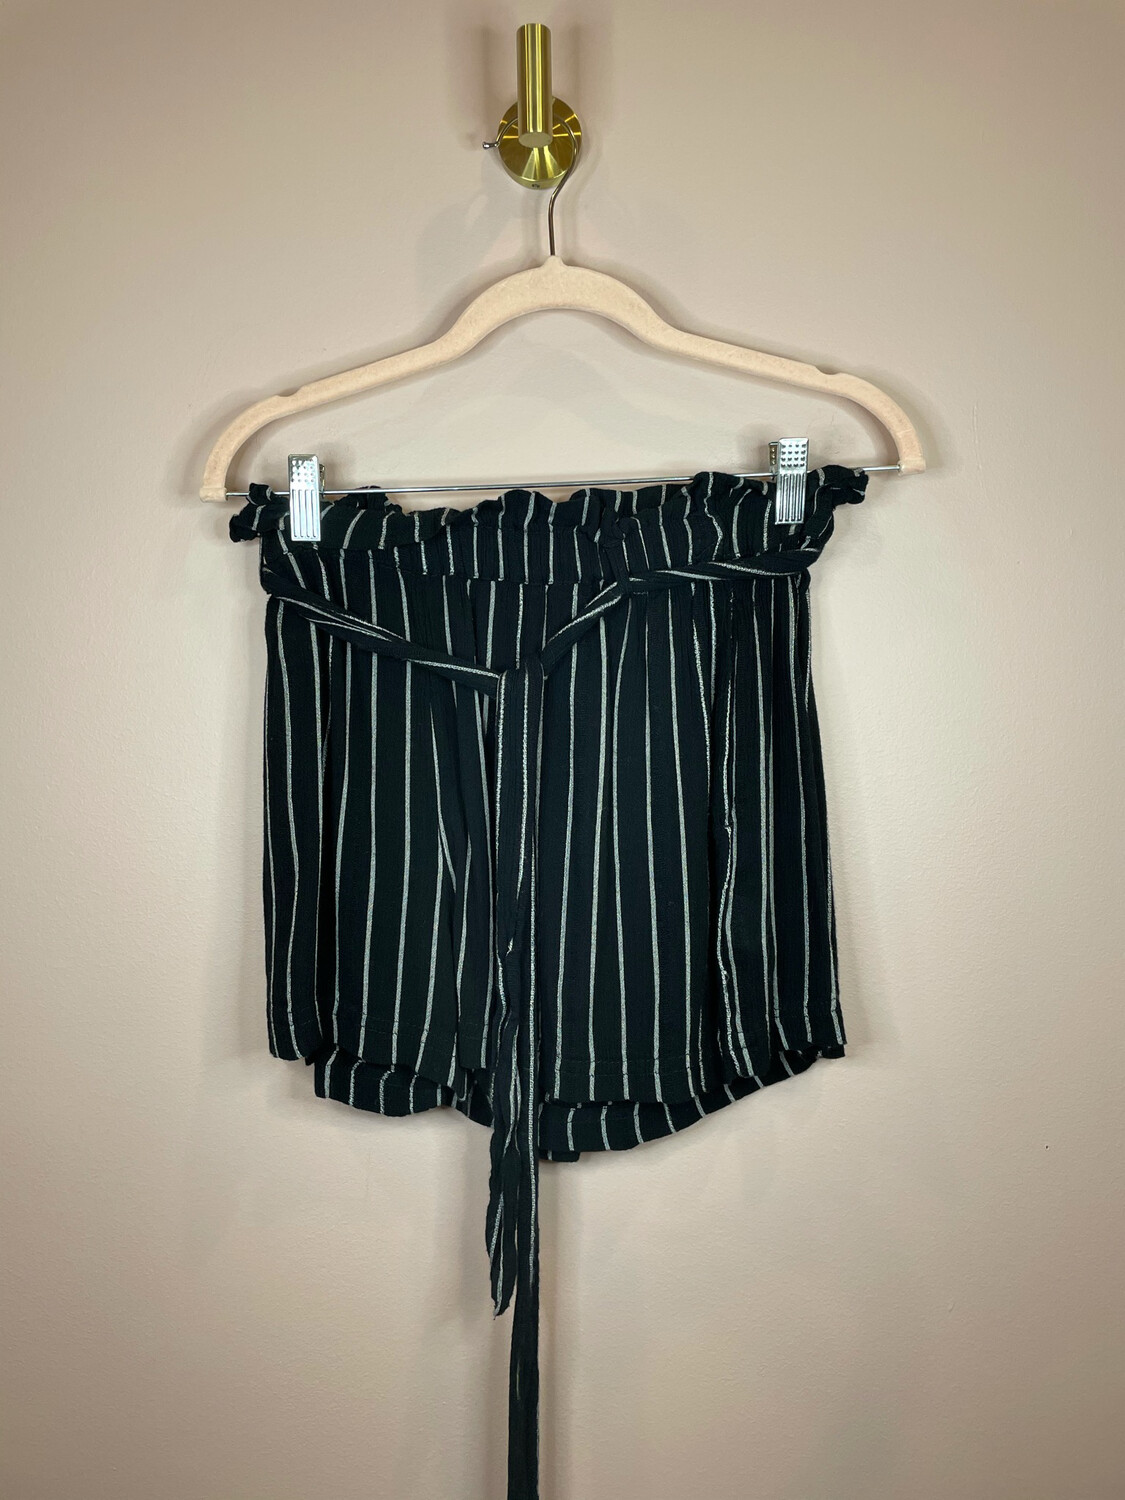 American eagle Outfitters Black & White Striped Shorts - S